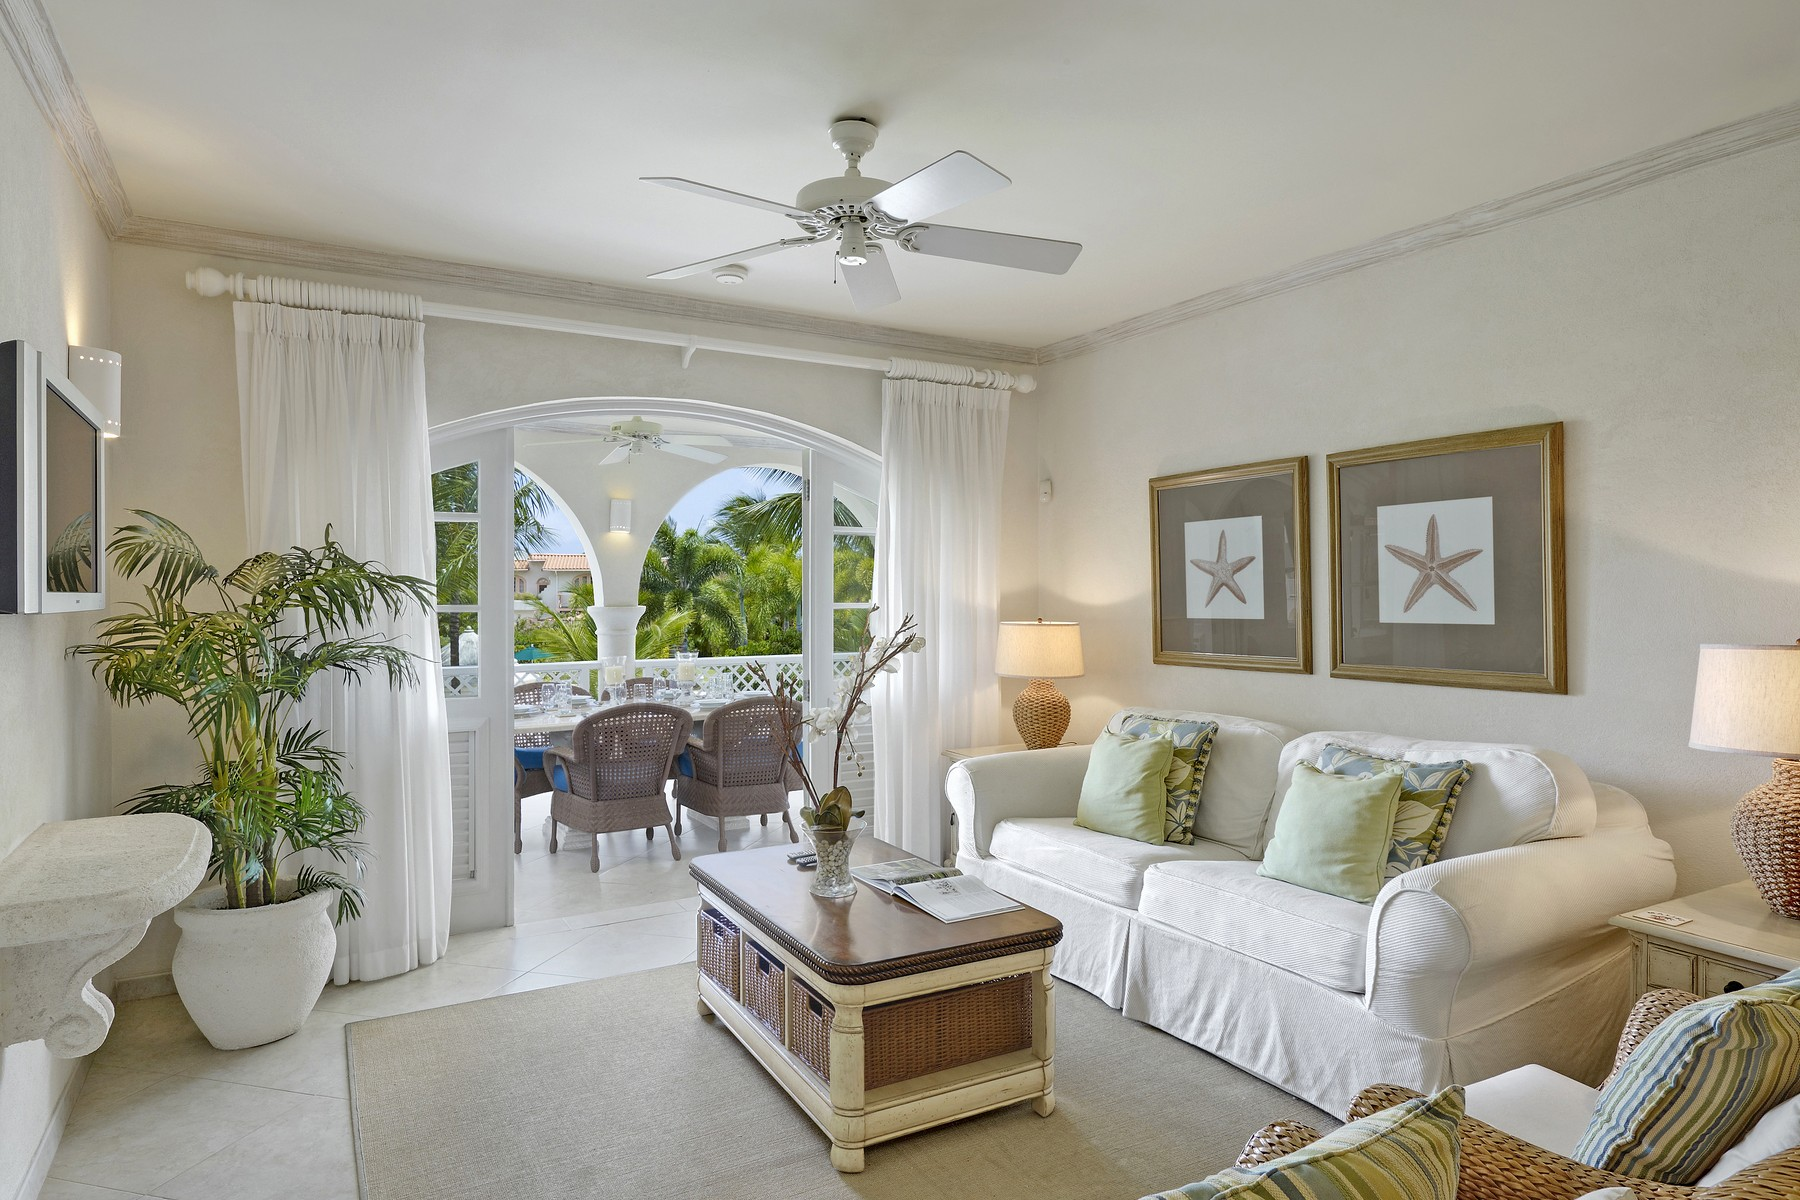 Property For Sale at Sugar Hill B207